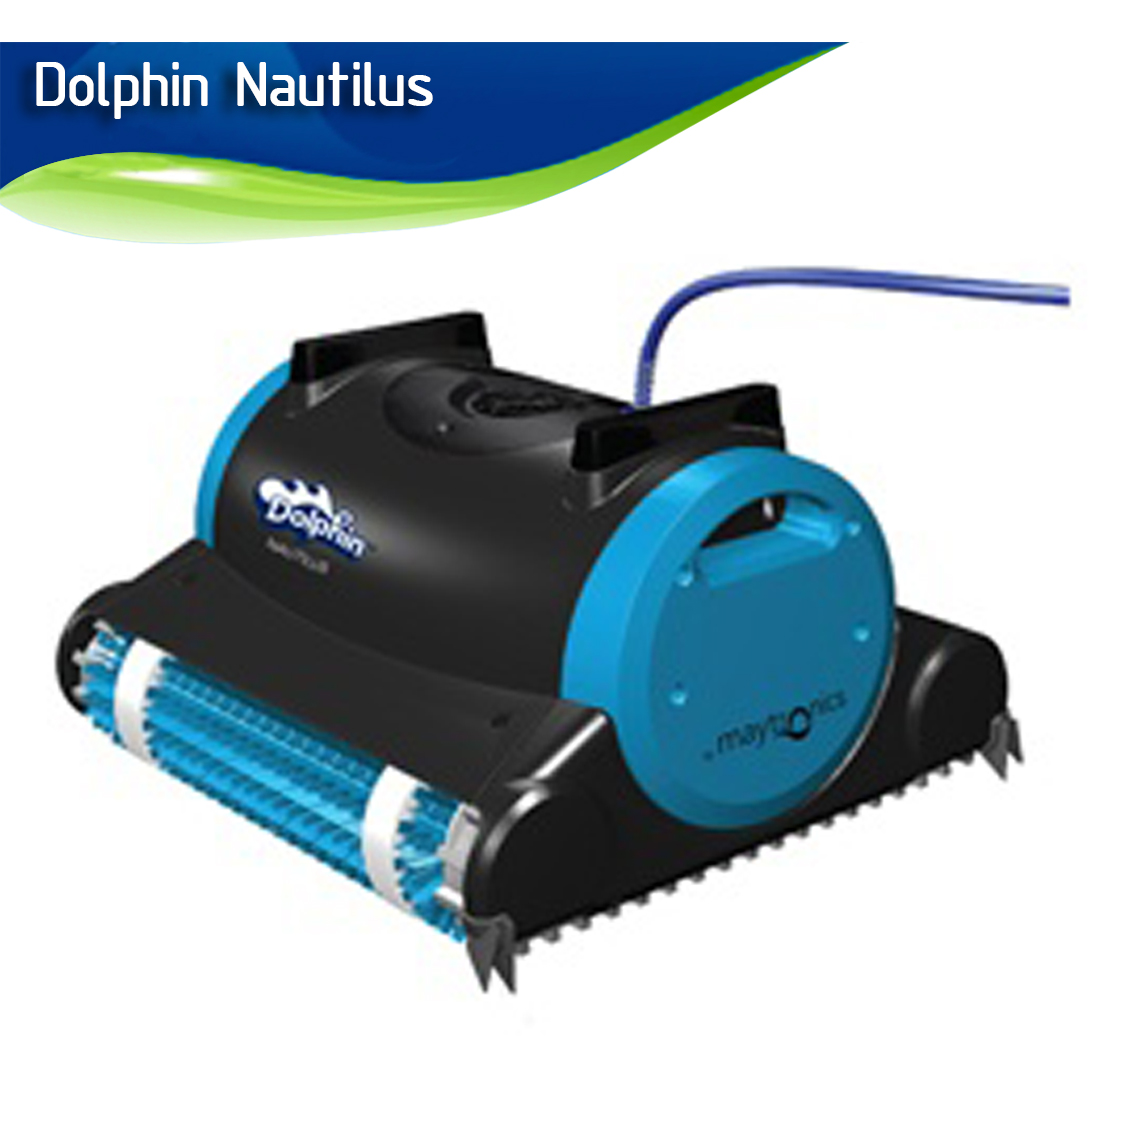 Dolphin Nautilus REVIEW